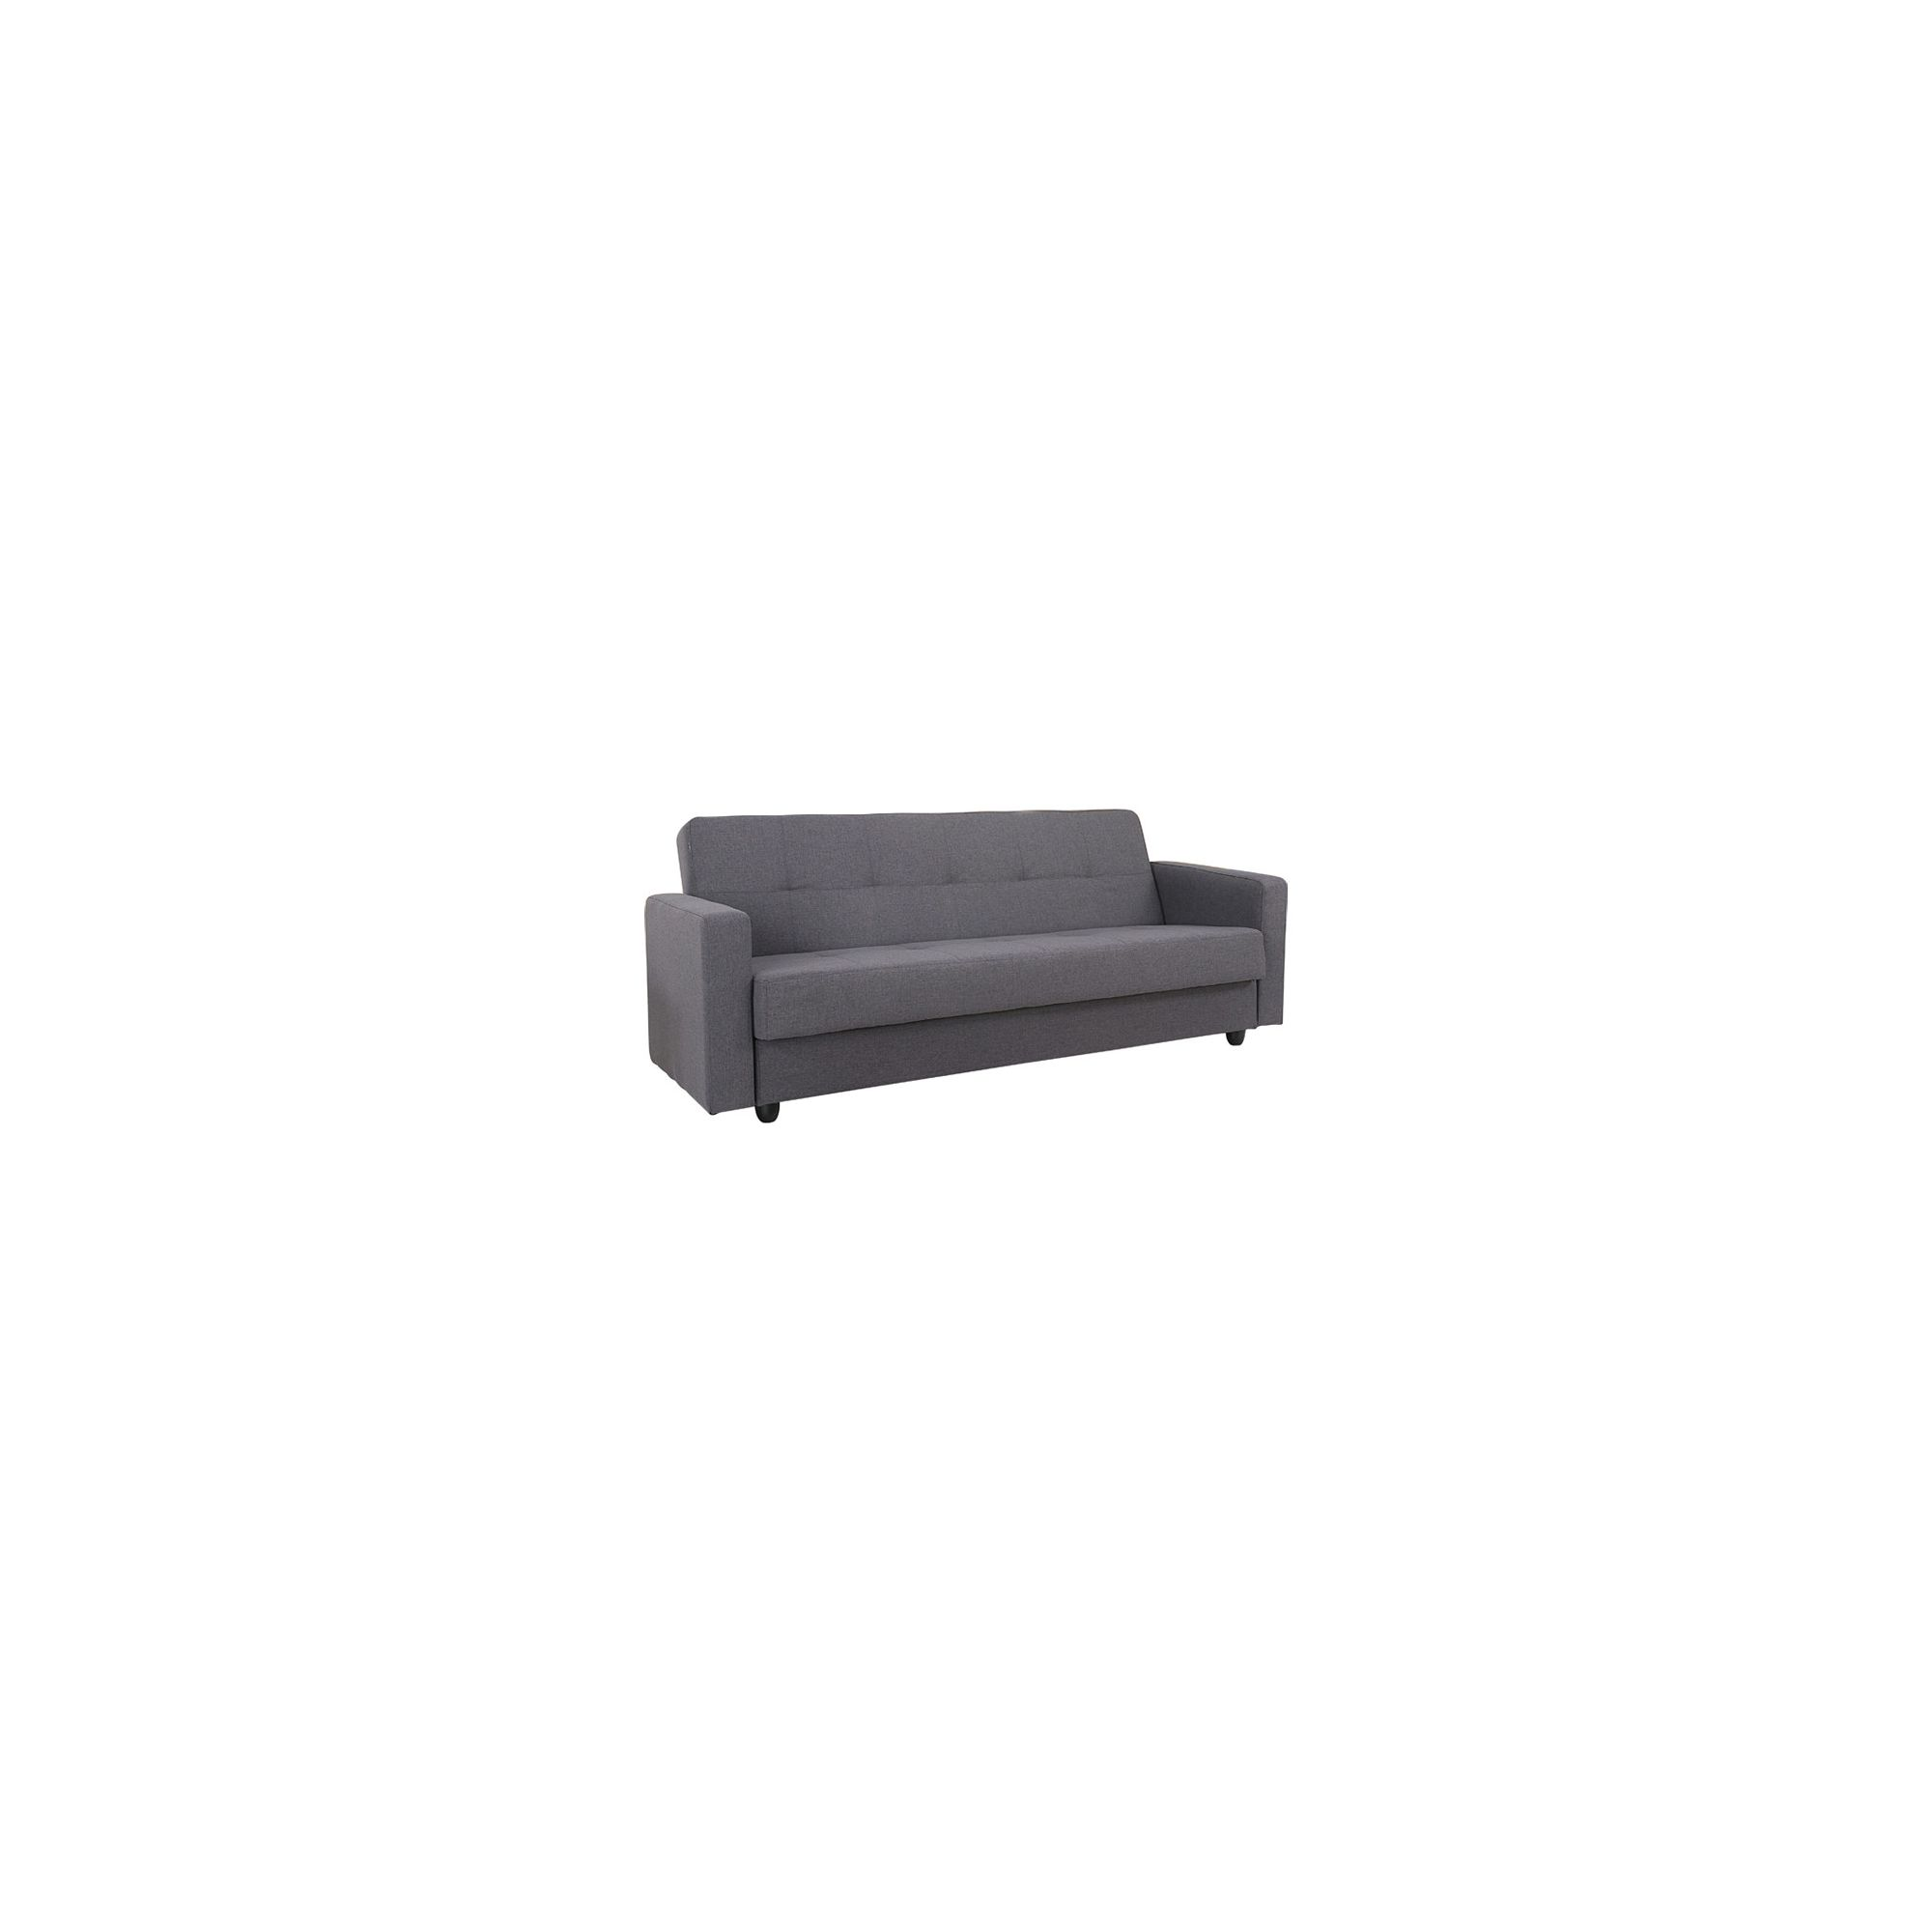 Leader Lifestyle Jensen Sofa Bed at Tescos Direct